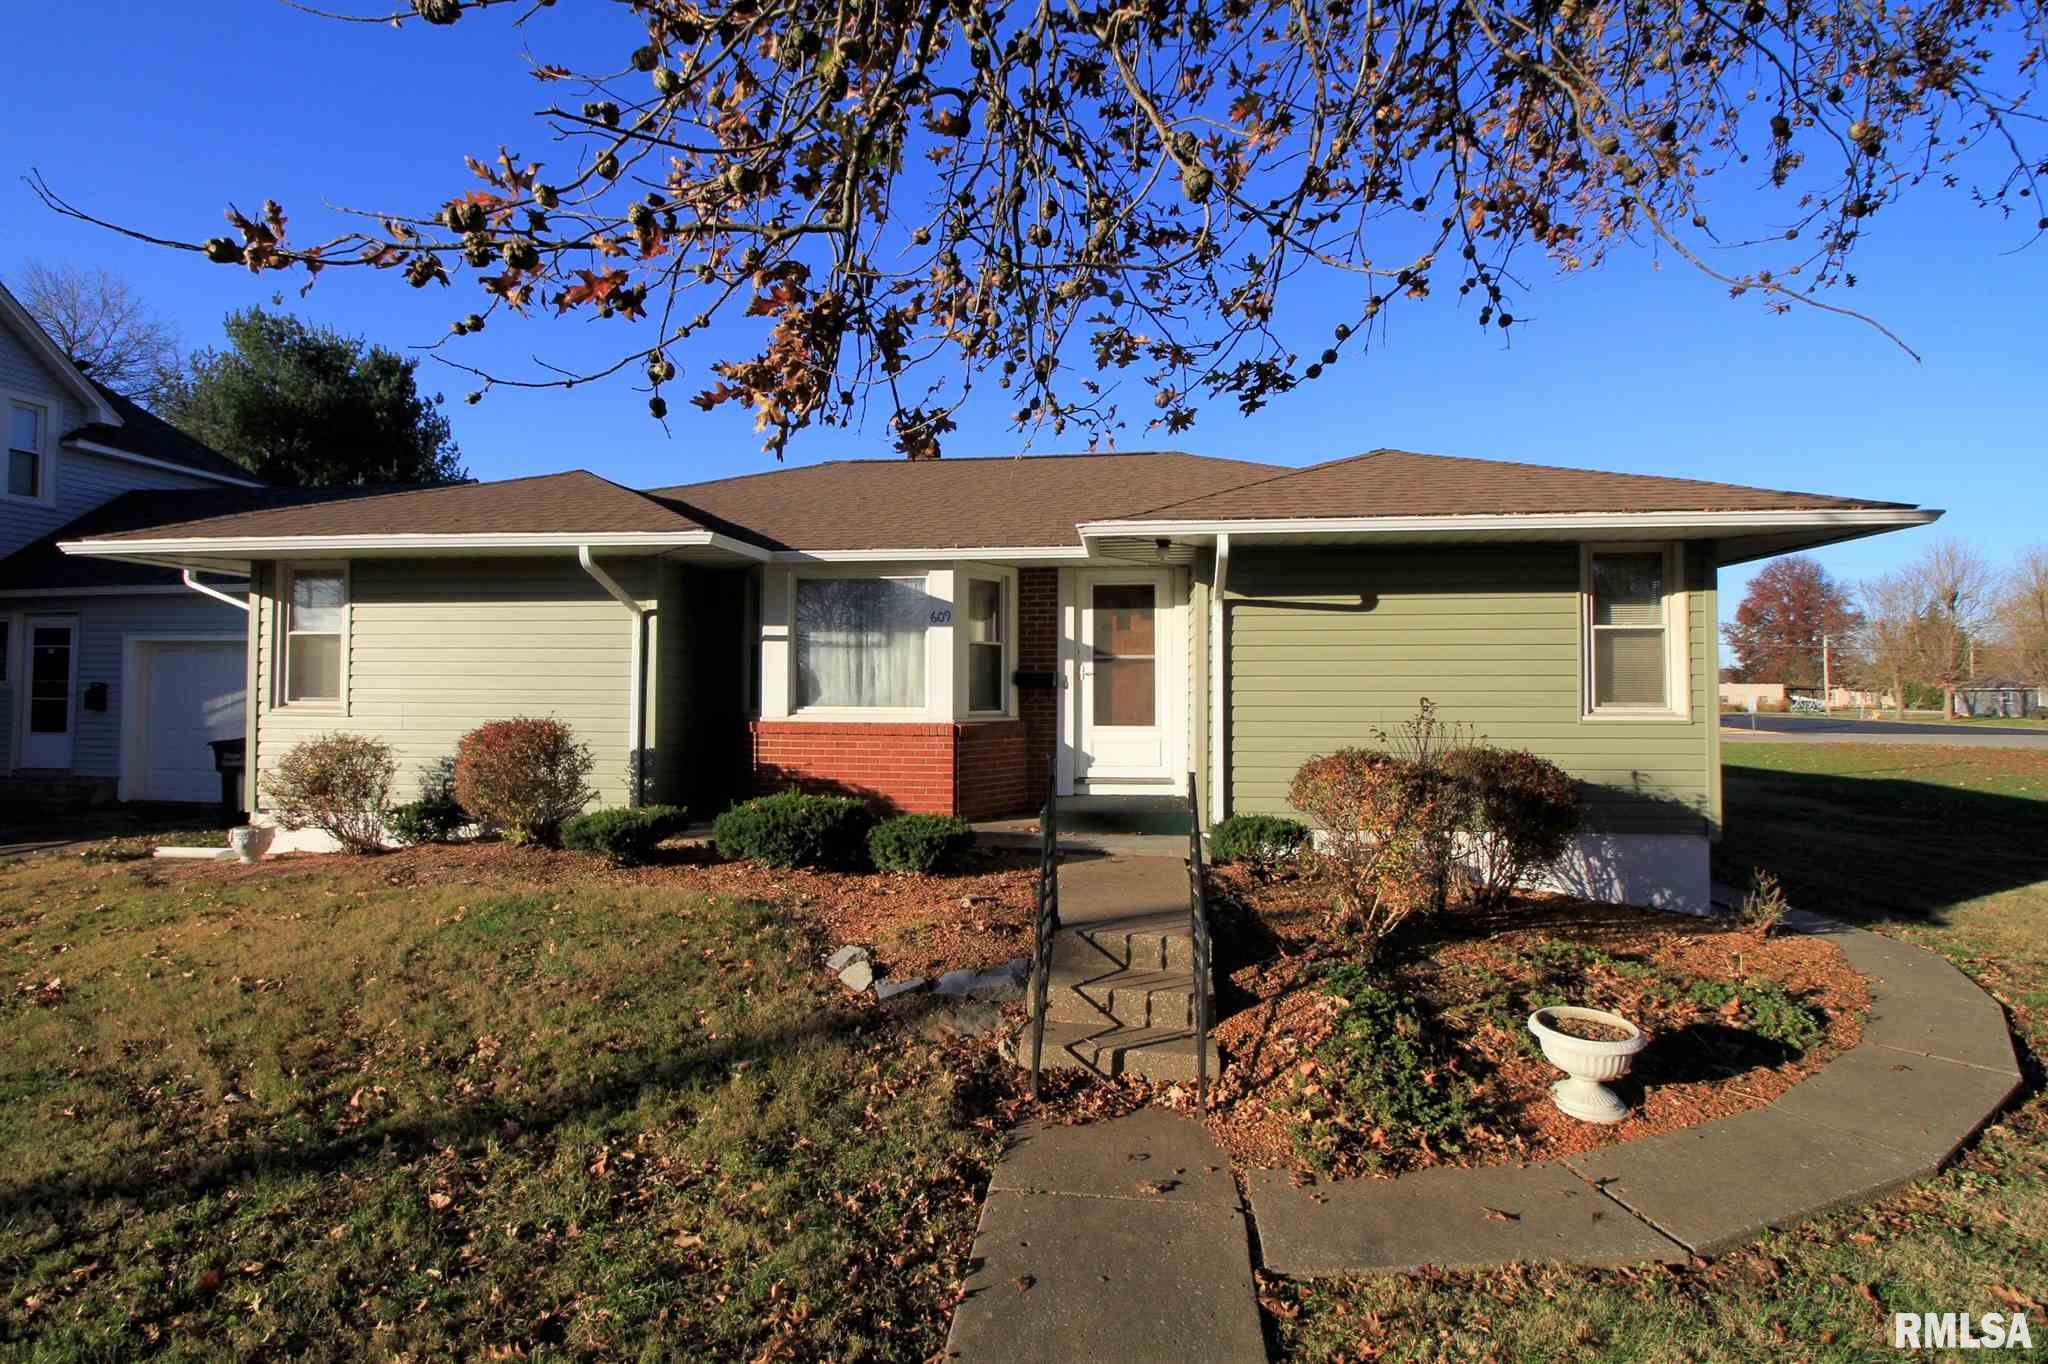 609 W BROADWAY Property Photo - Steeleville, IL real estate listing